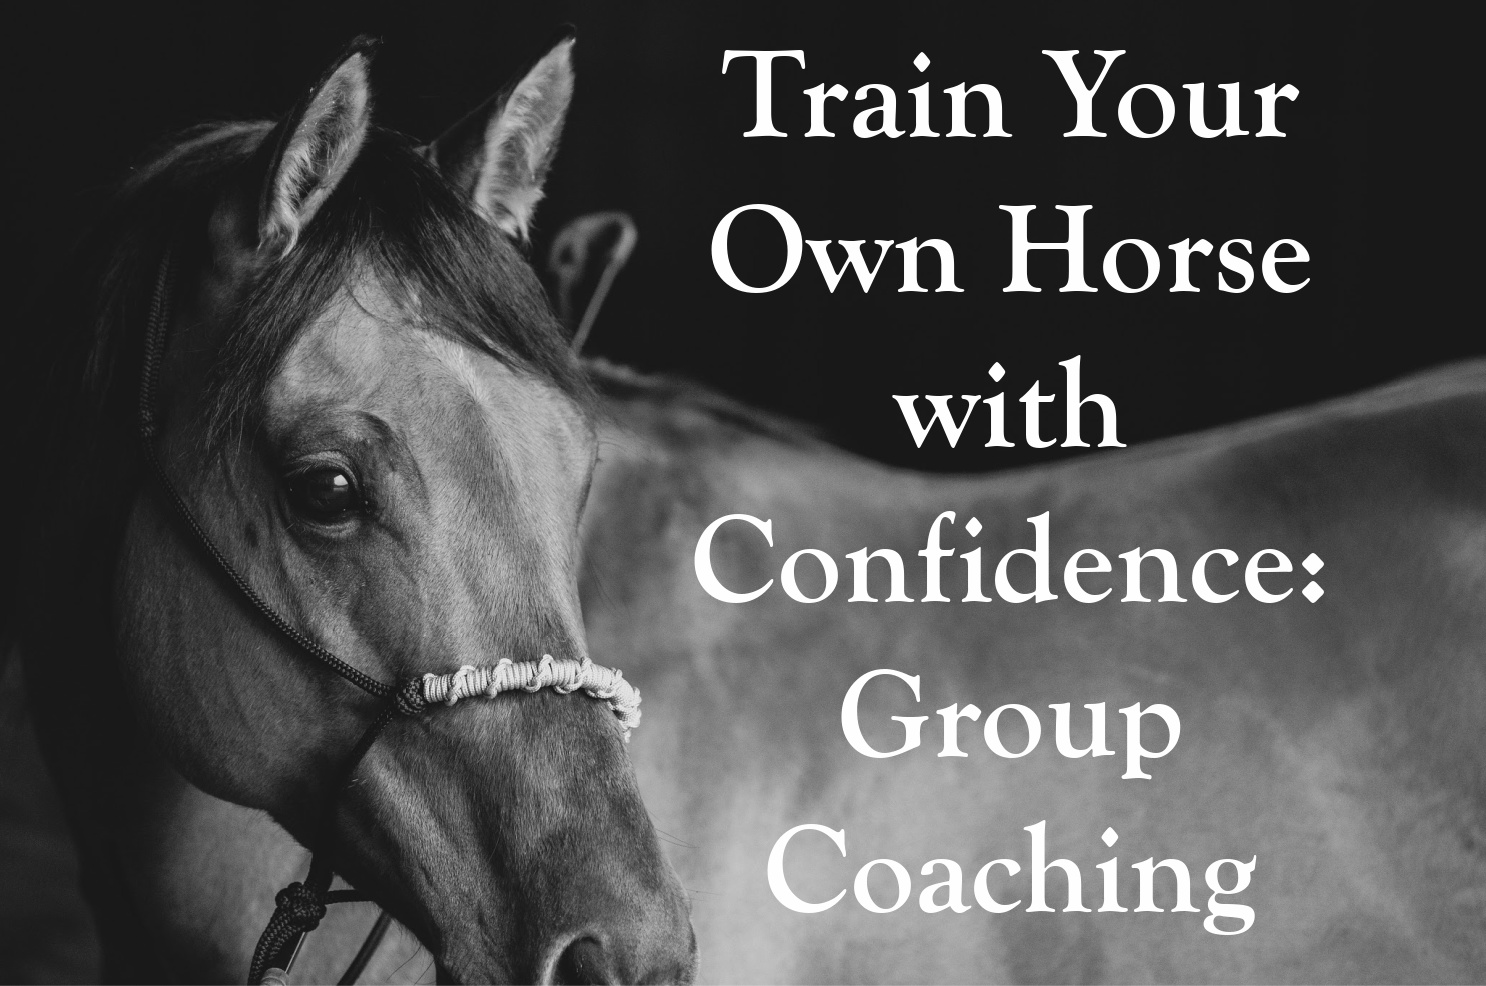 Train your own horse with confidence group